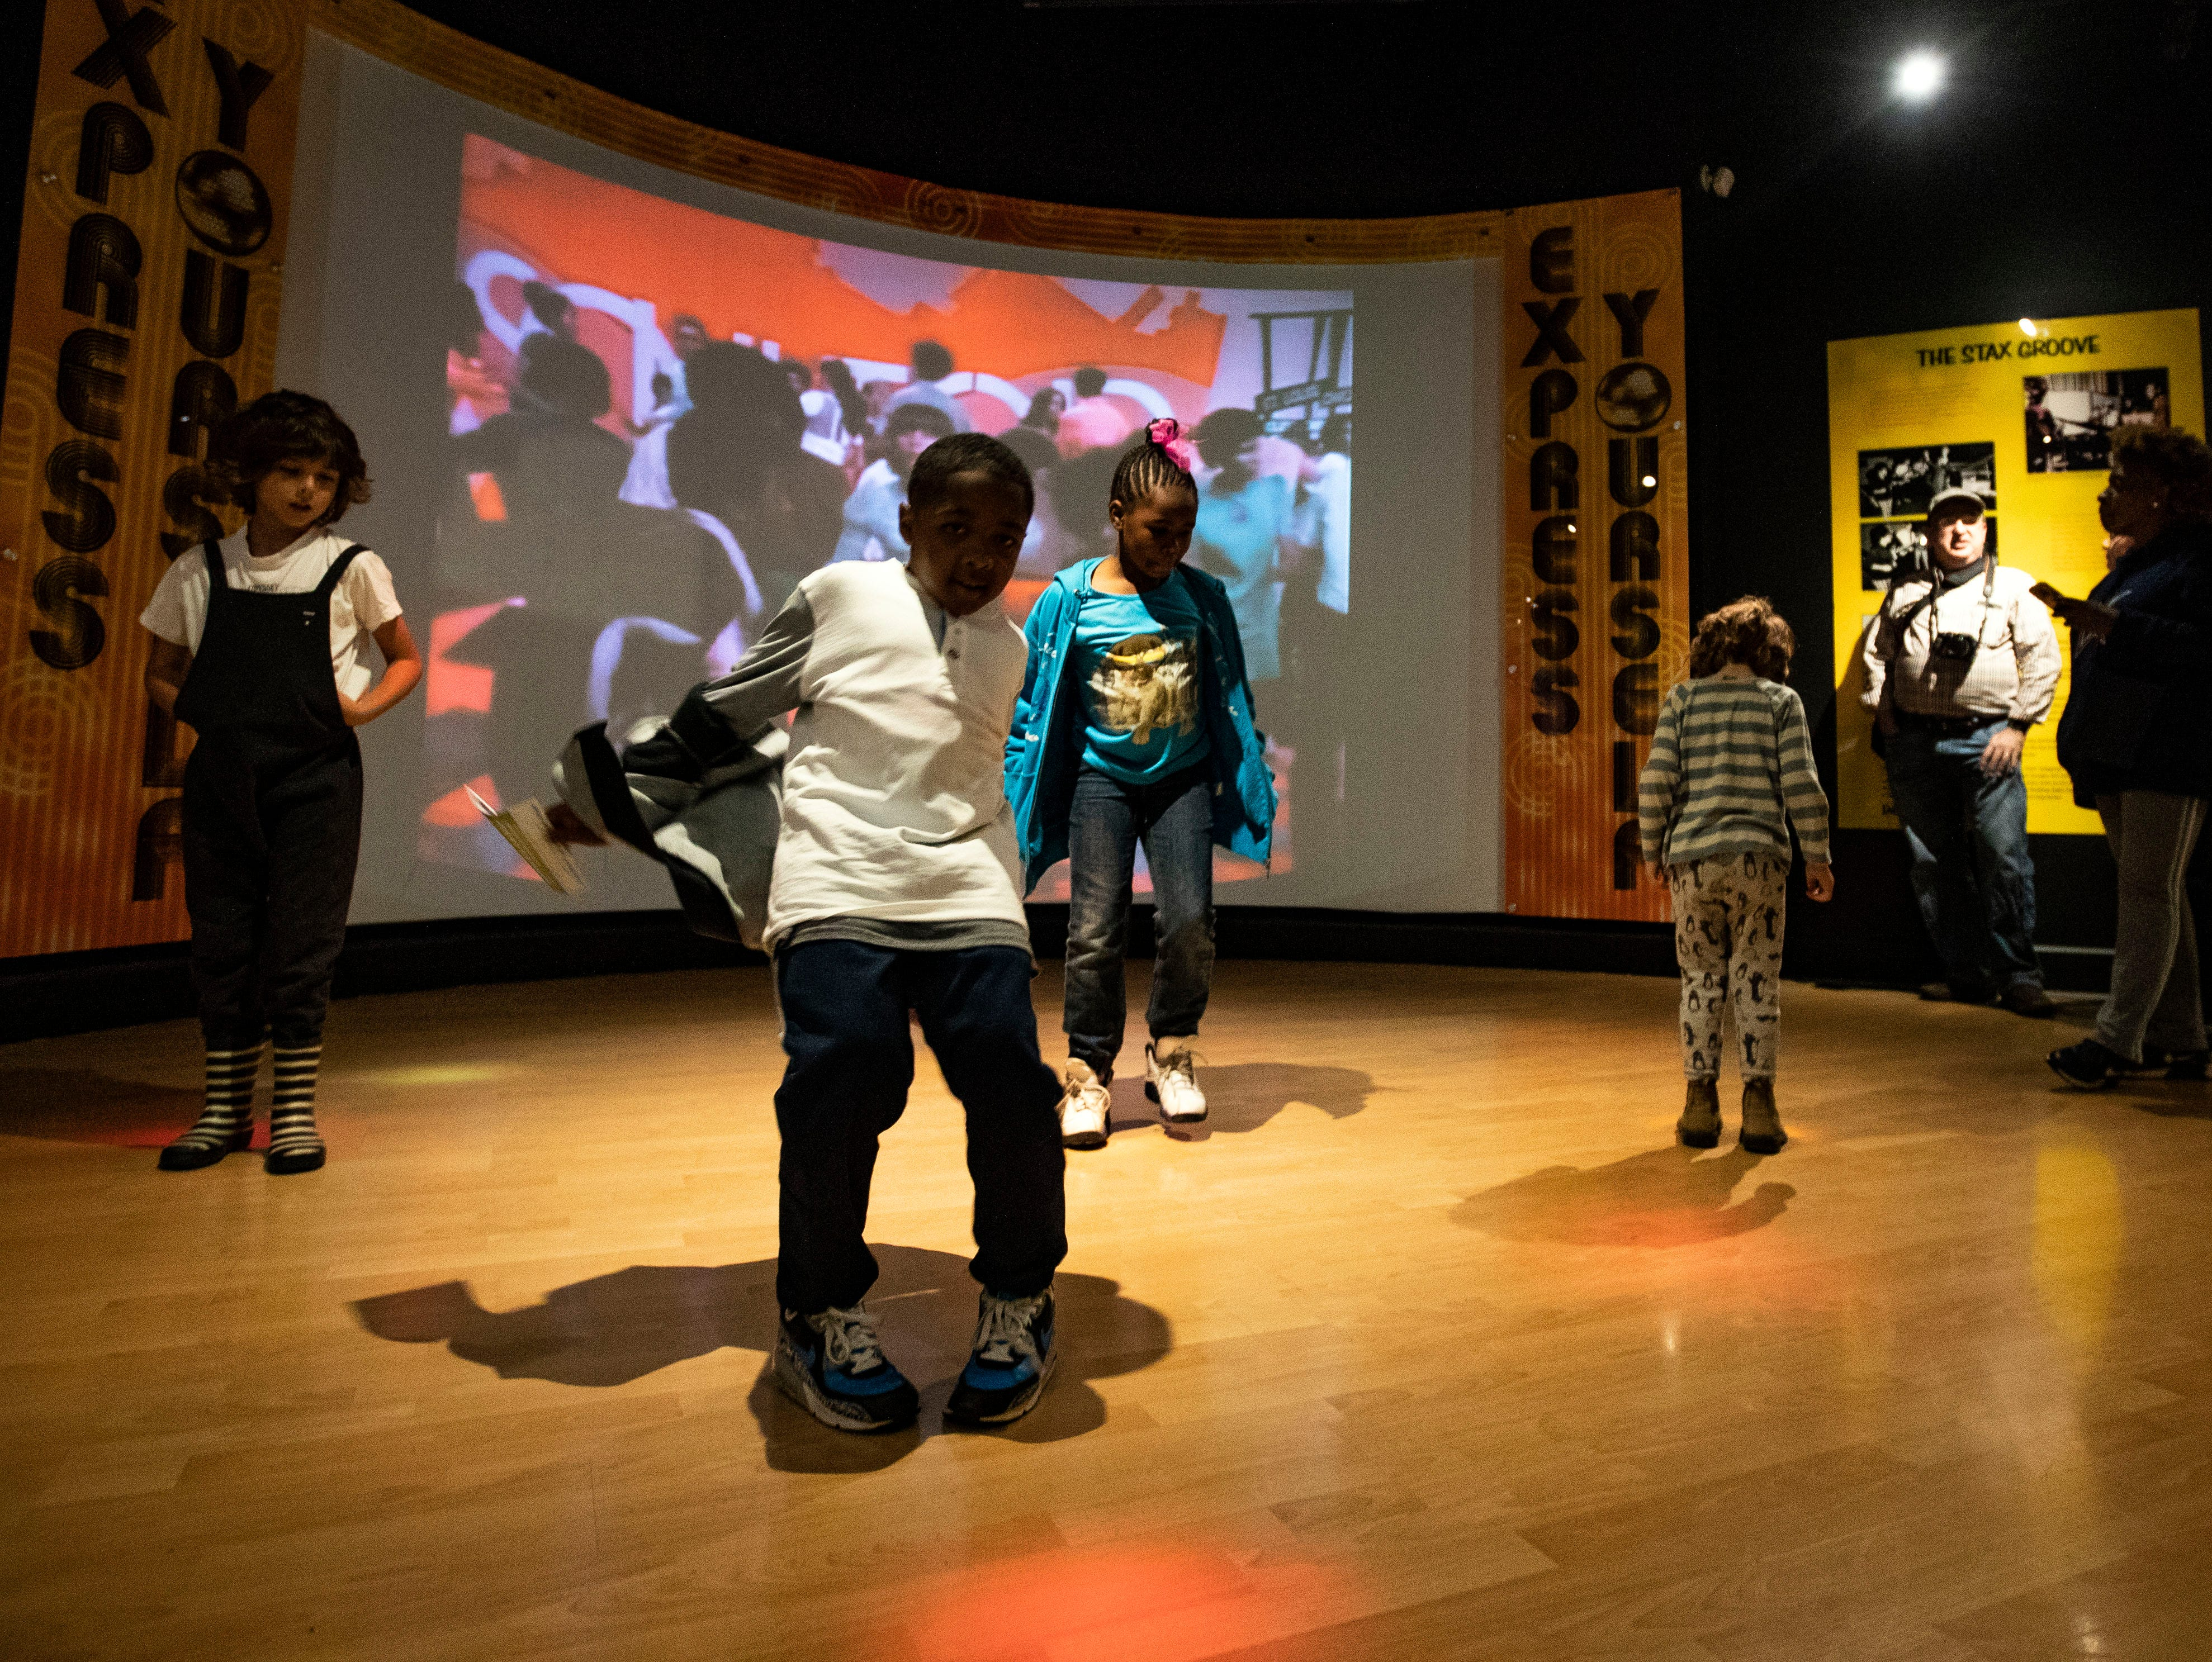 A group of children partake in a dancing game in front of the Soul Train exhibit at the Stax Museum of American Soul Music during the 2018 Soulsville USA Festival Saturday October 20, 2018.